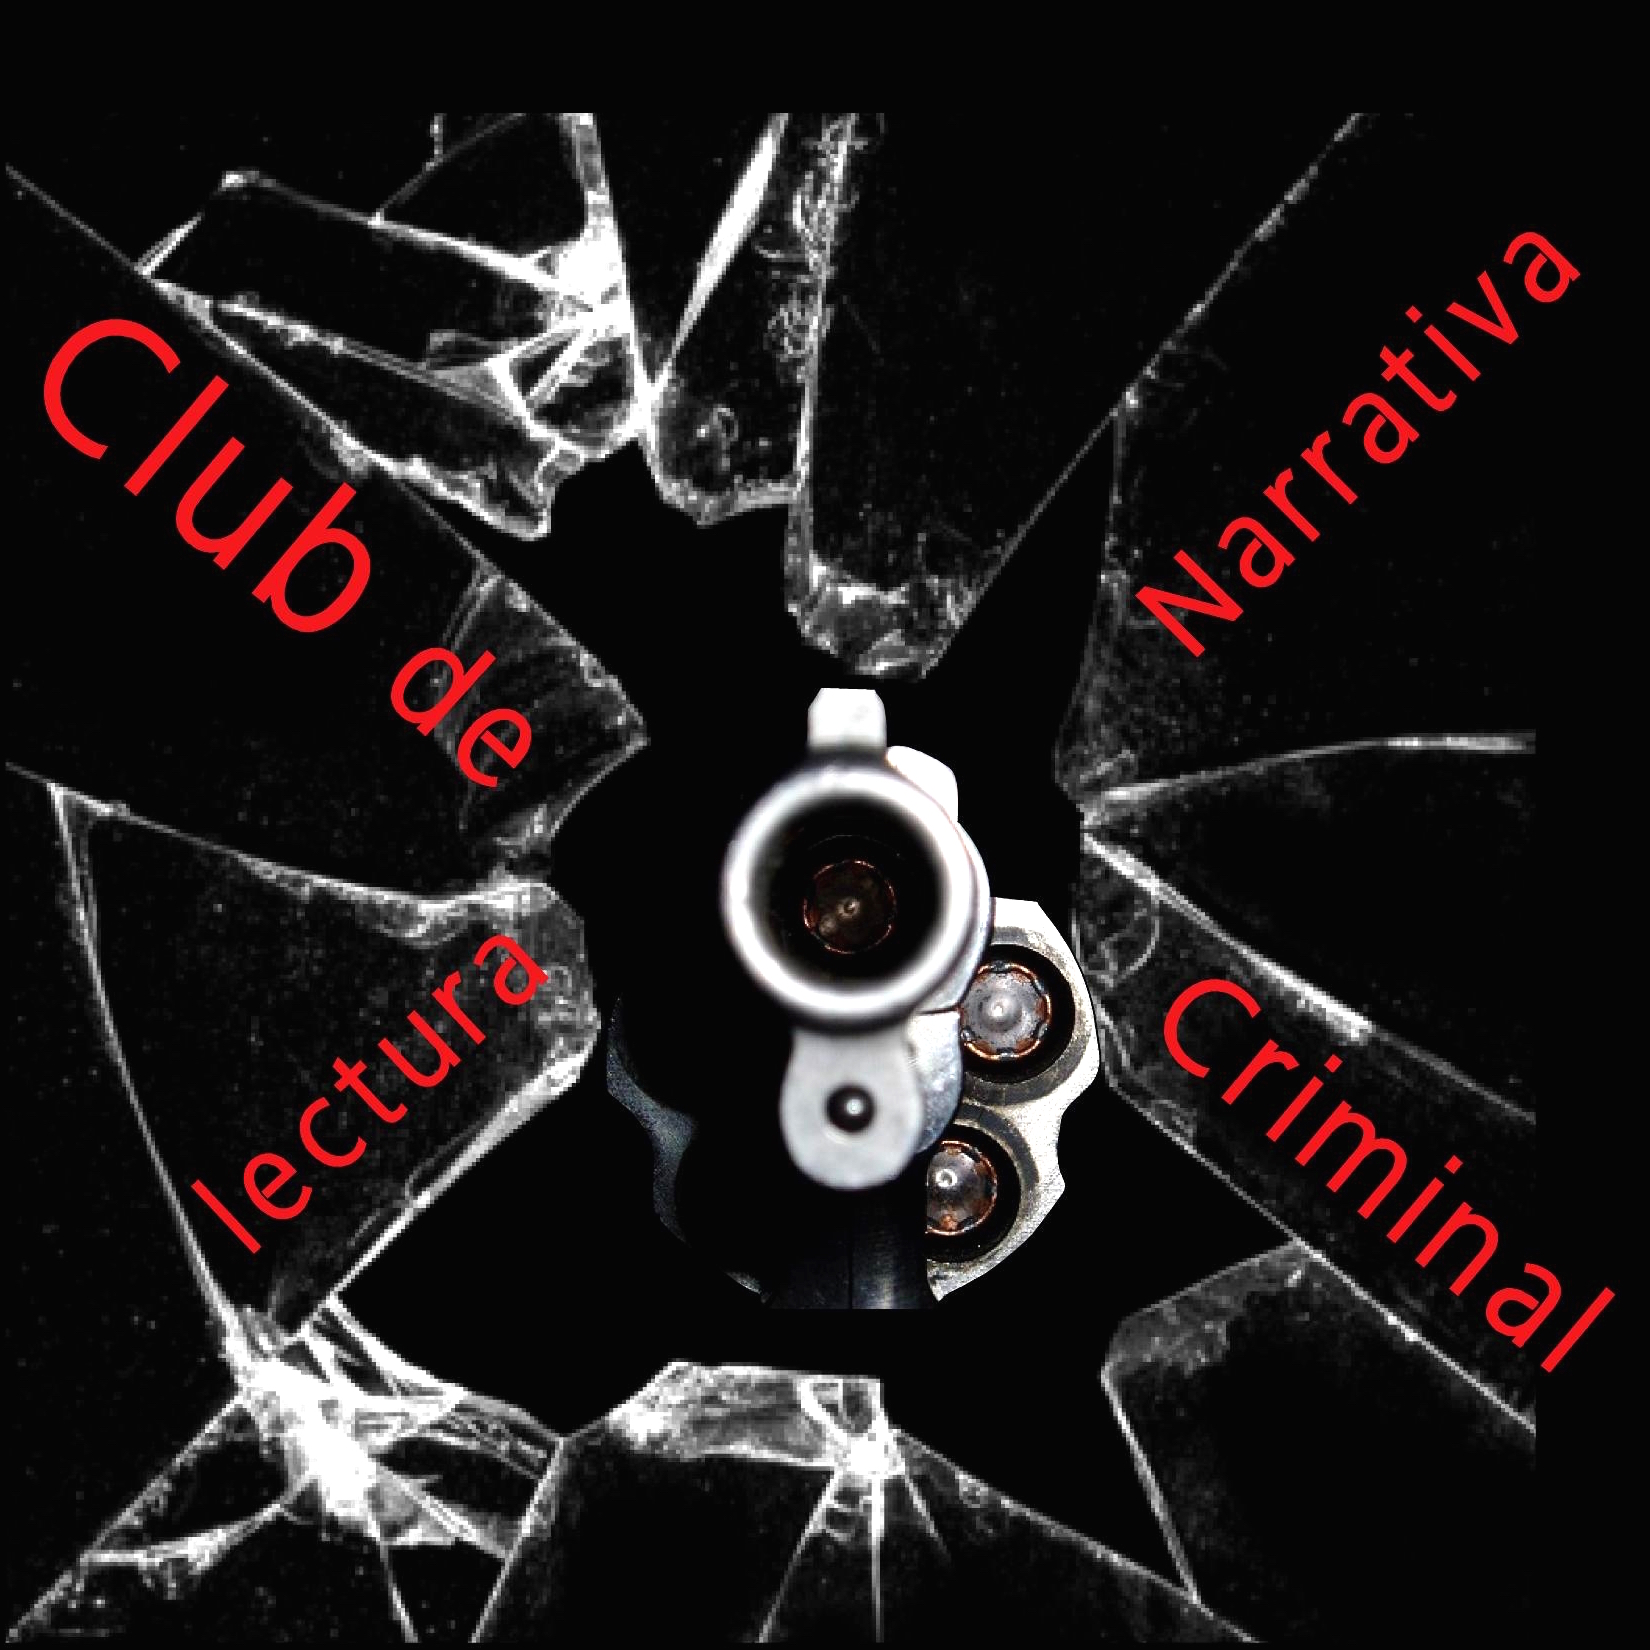 Logo Club de lectura narrativa criminal cuadrado